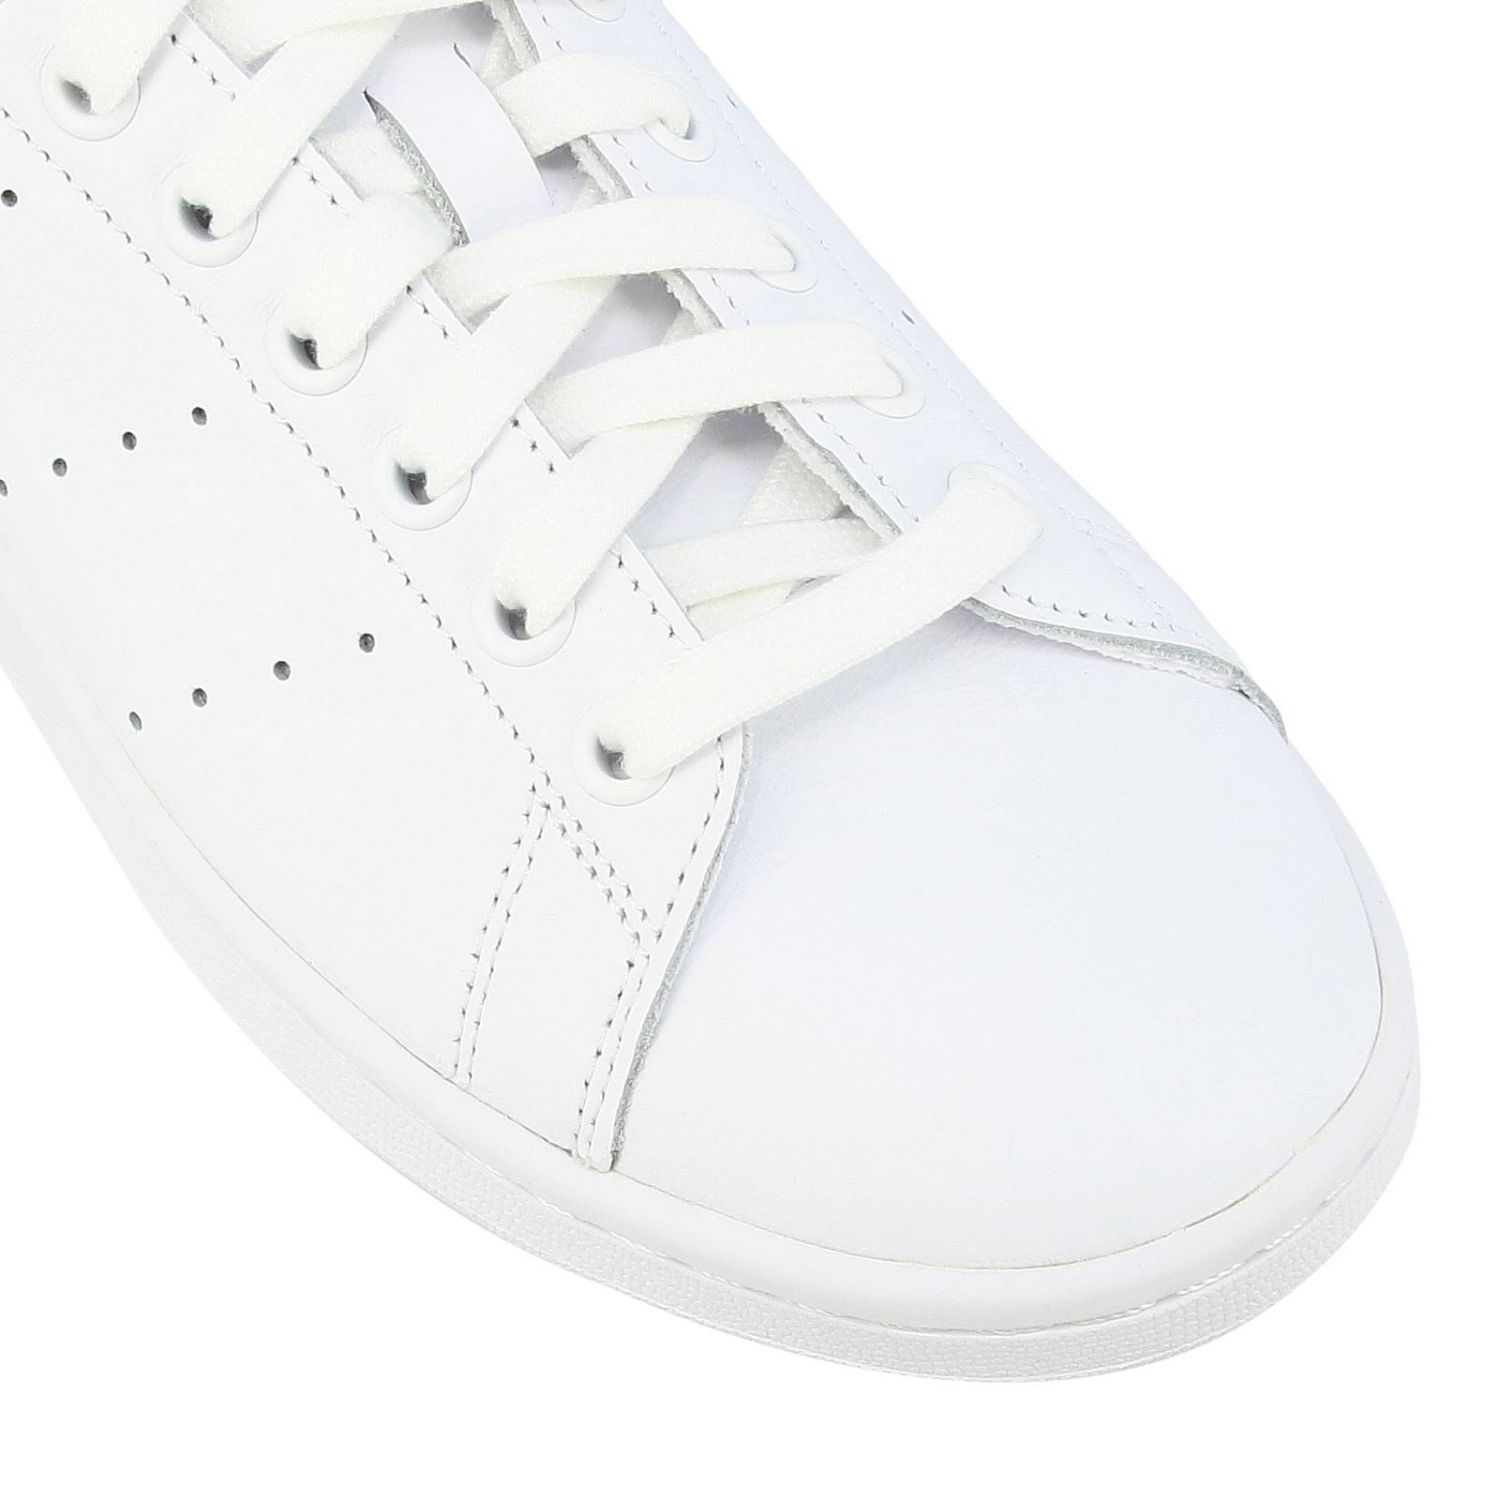 Sneakers Adidas Originals: Stan Smith Adidas Originals Sneakers in leather with contrasting heel white 4